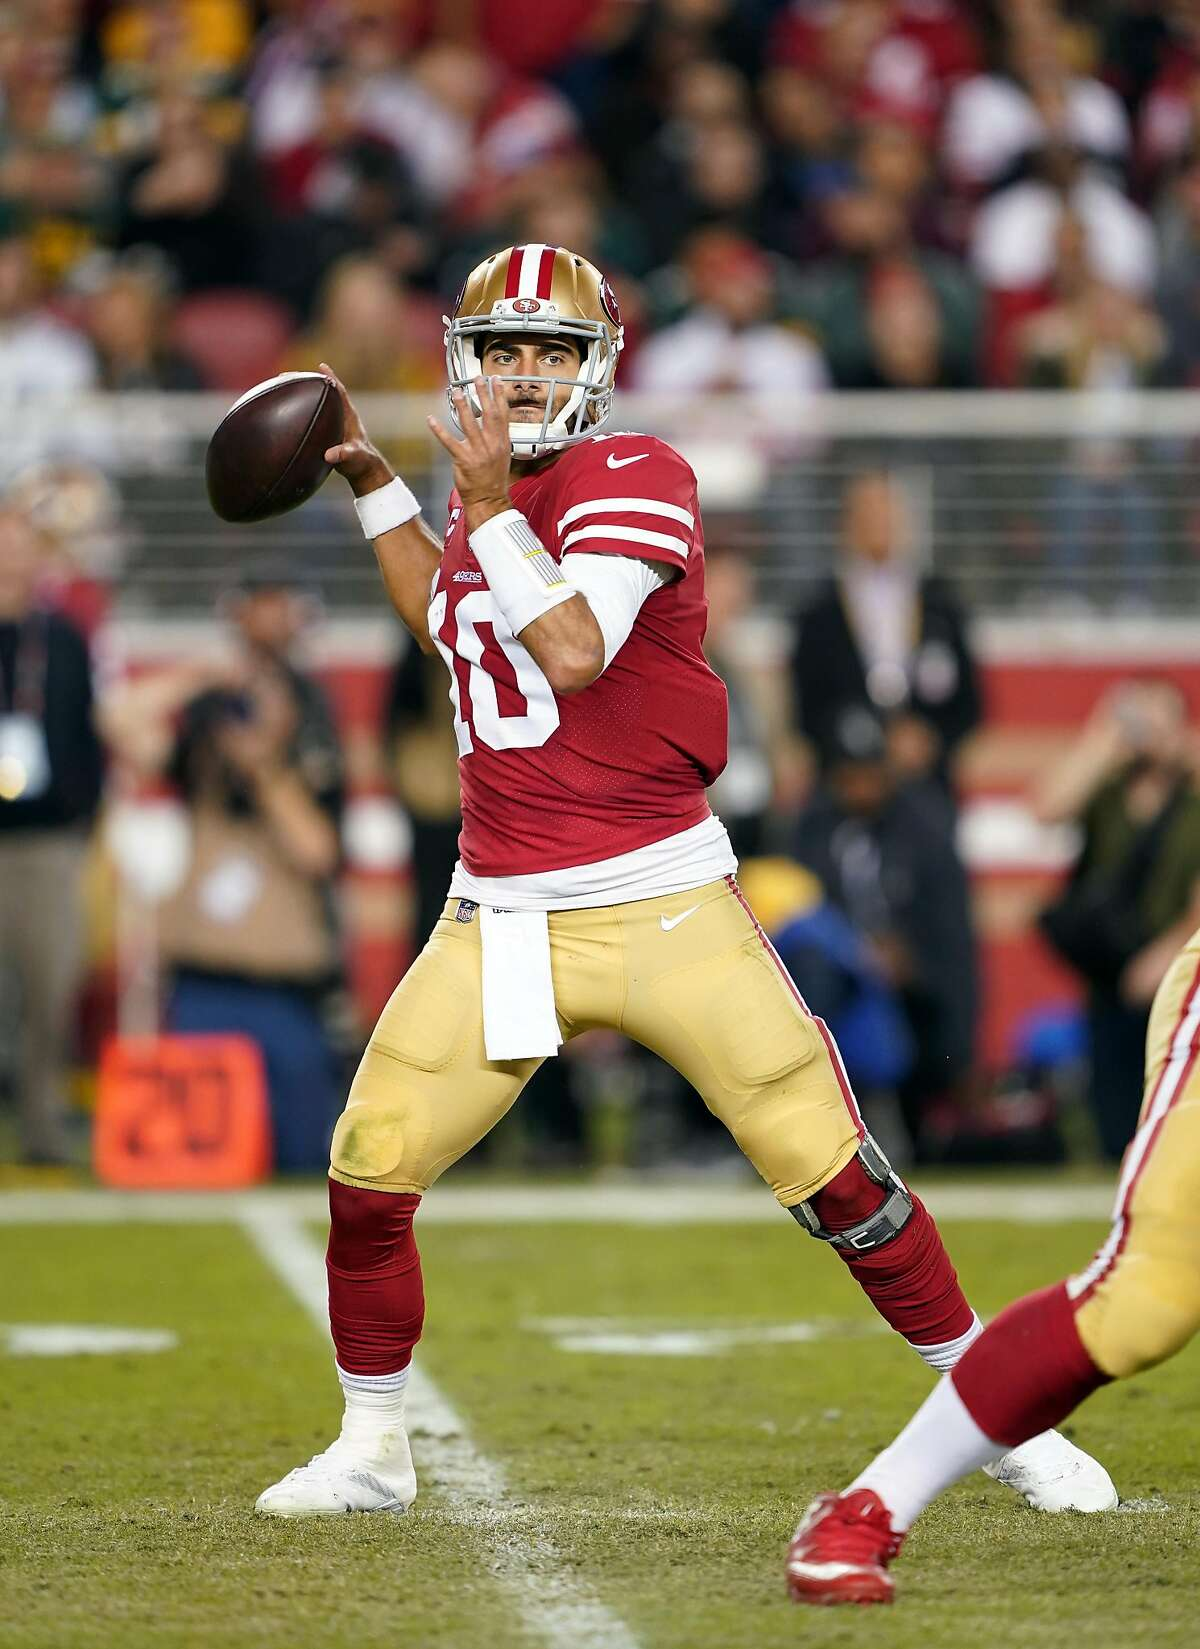 Quarterback Jimmy Garoppolo #10 of the San Francisco 49ers looks to pass during the first half of the game against the Green Bay Packers at Levi's Stadium on November 24, 2019 in Santa Clara, California.